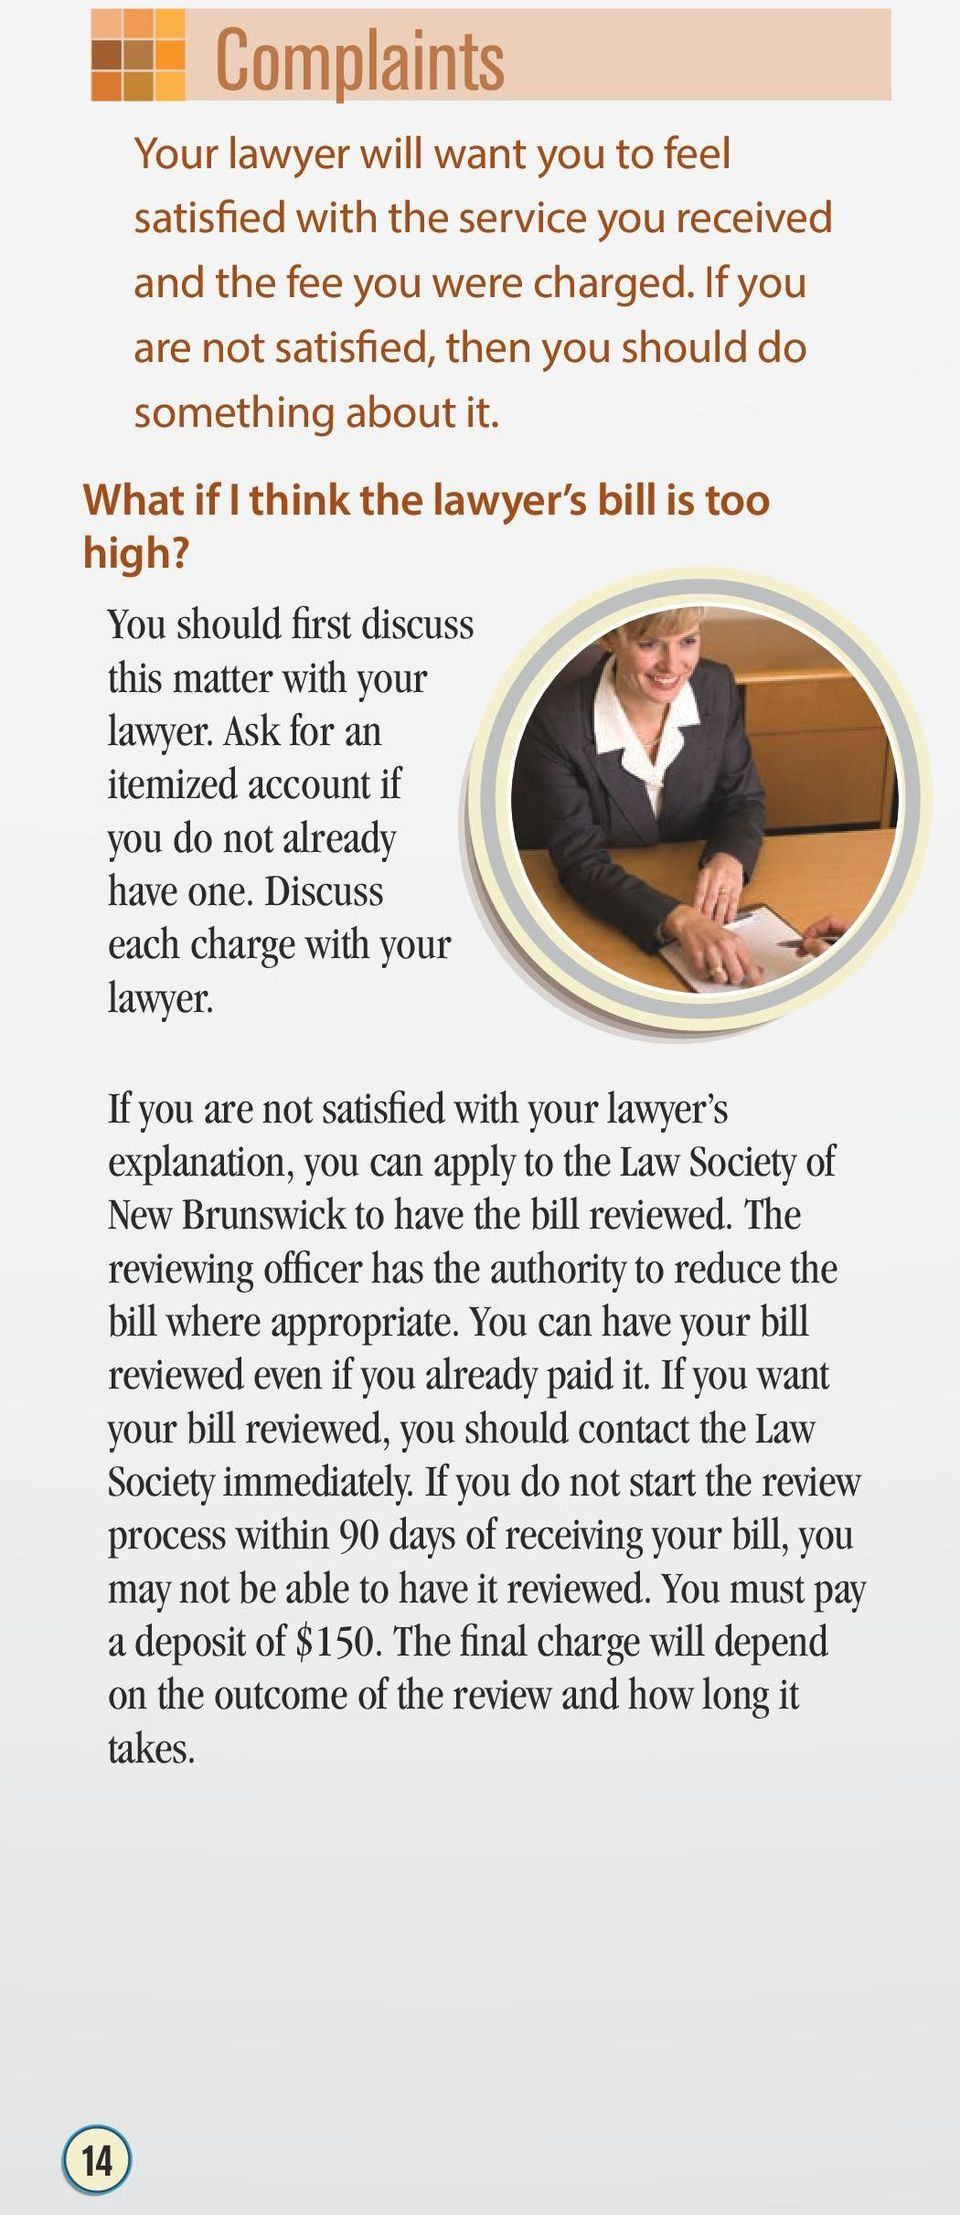 If you are not satisfied with your lawyer s explanation, you can apply to the Law Society of New Brunswick to have the bill reviewed.